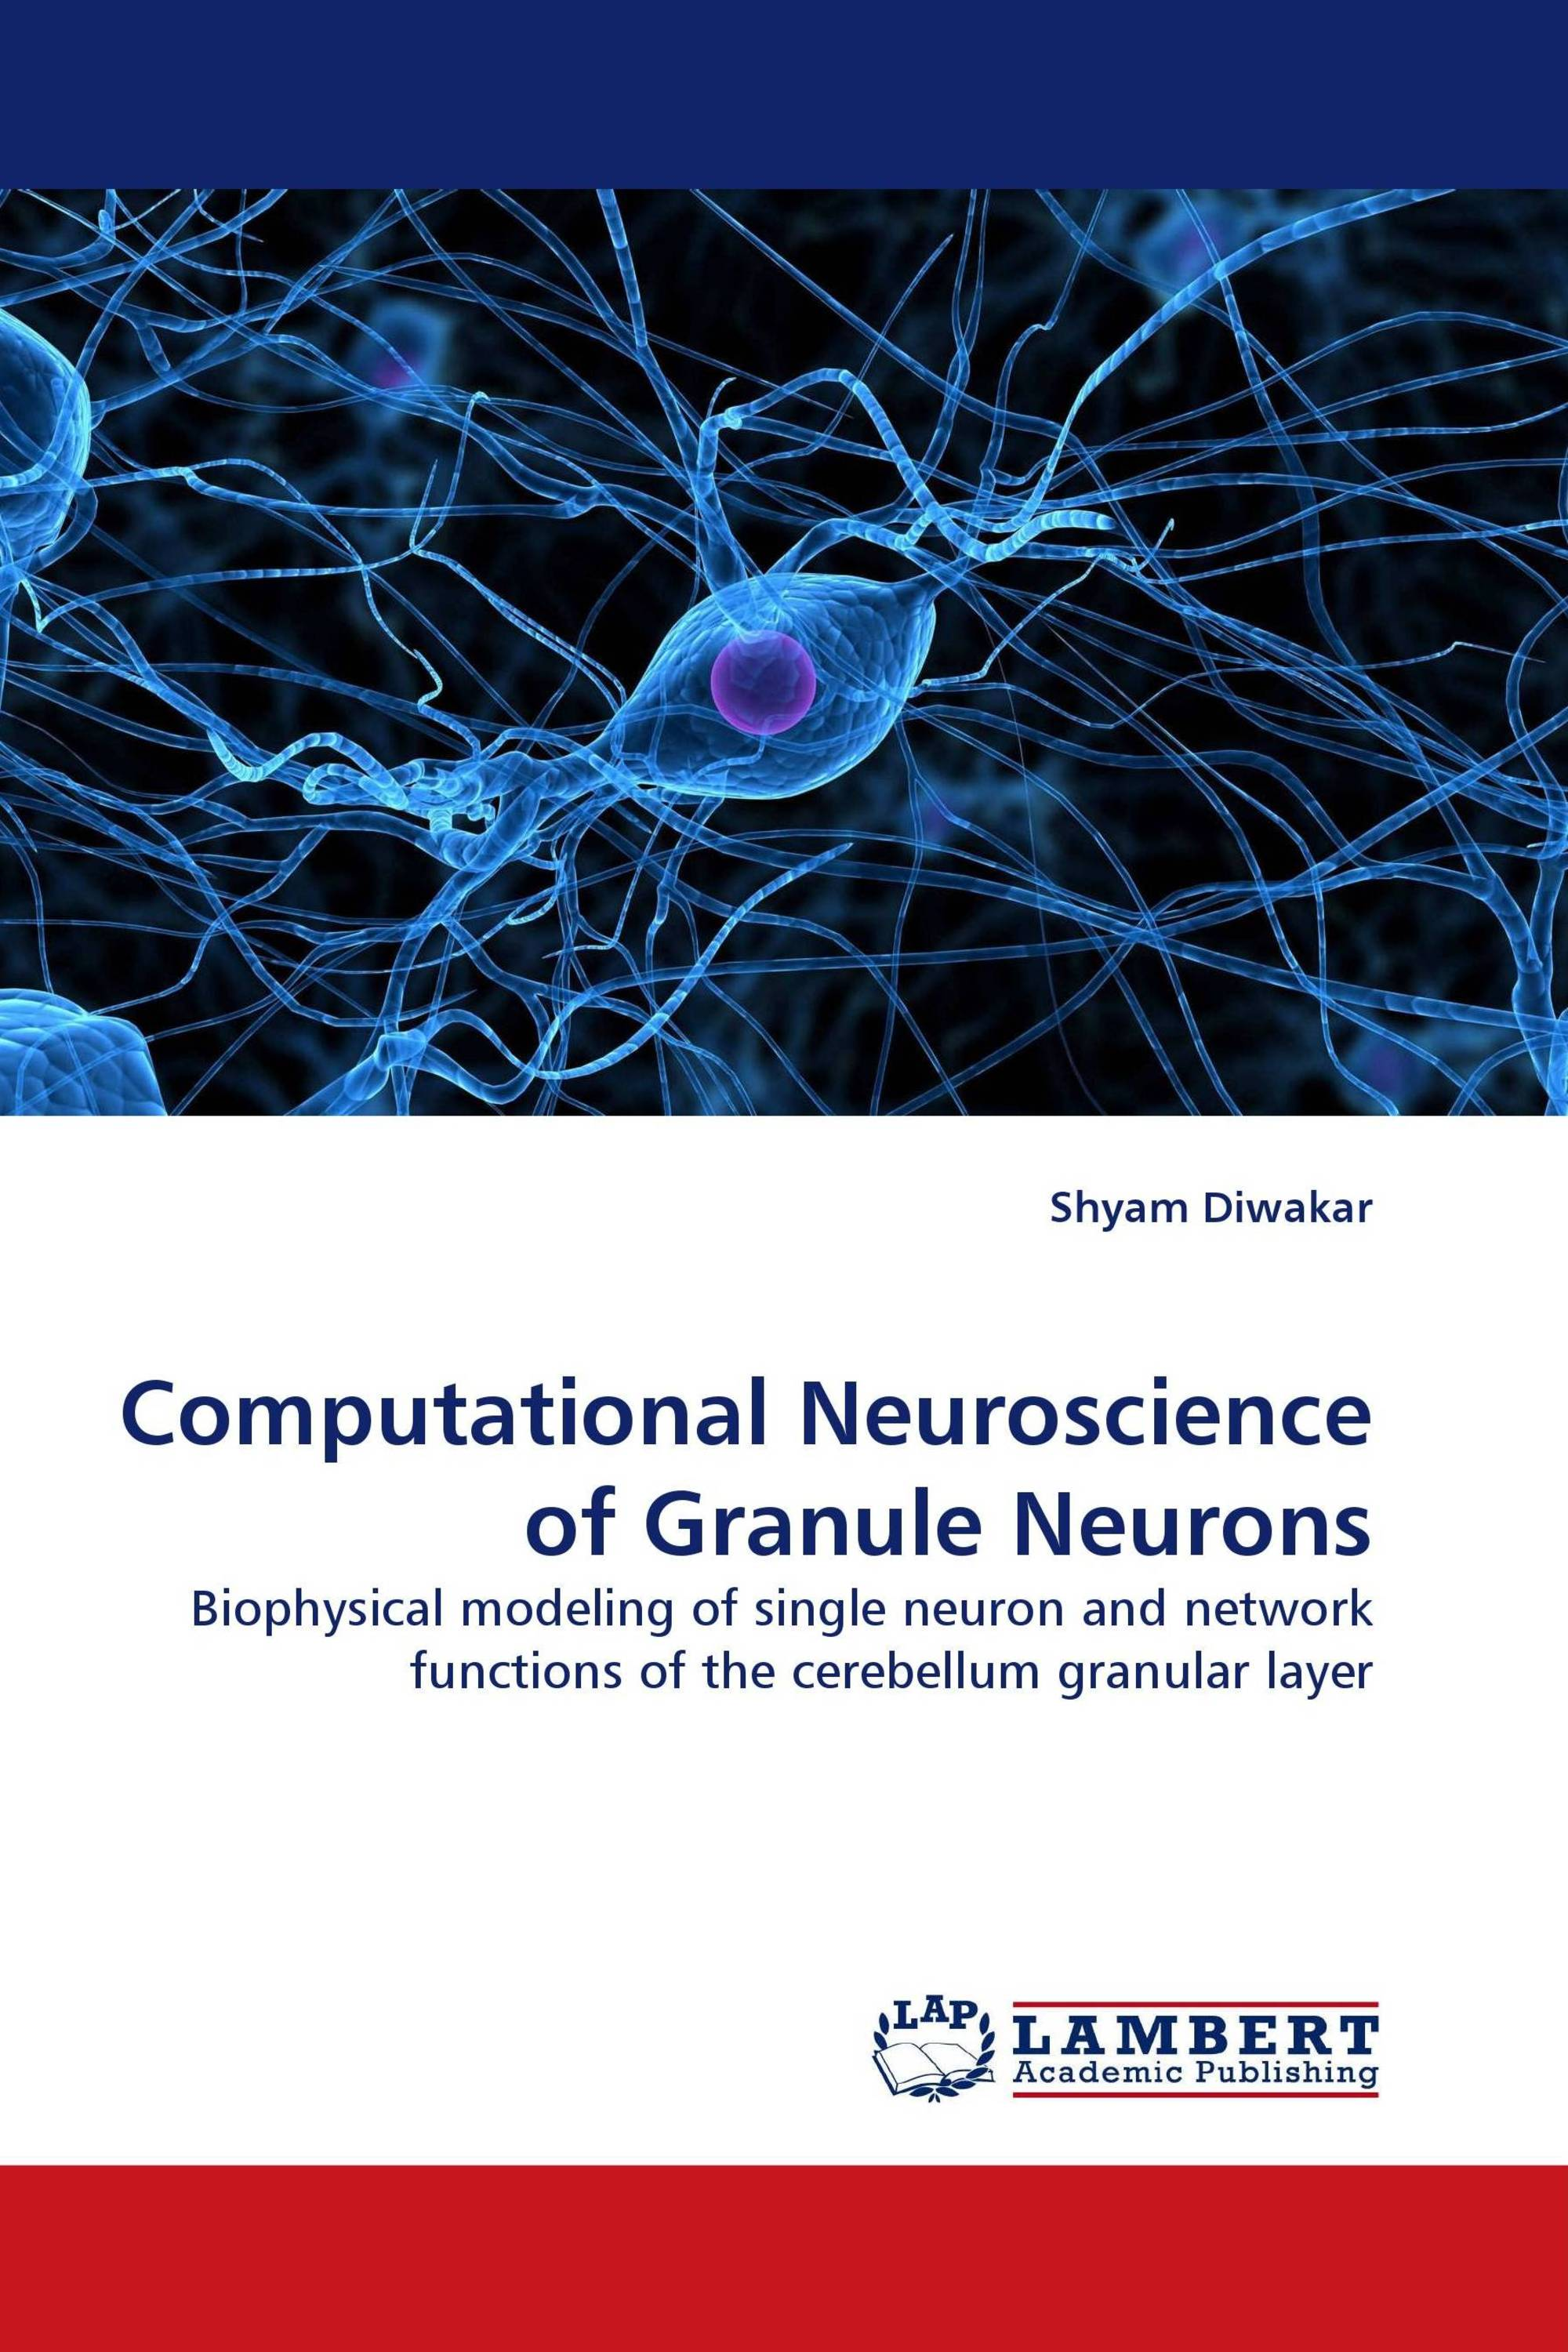 Computational Neuroscience of Granule Neurons